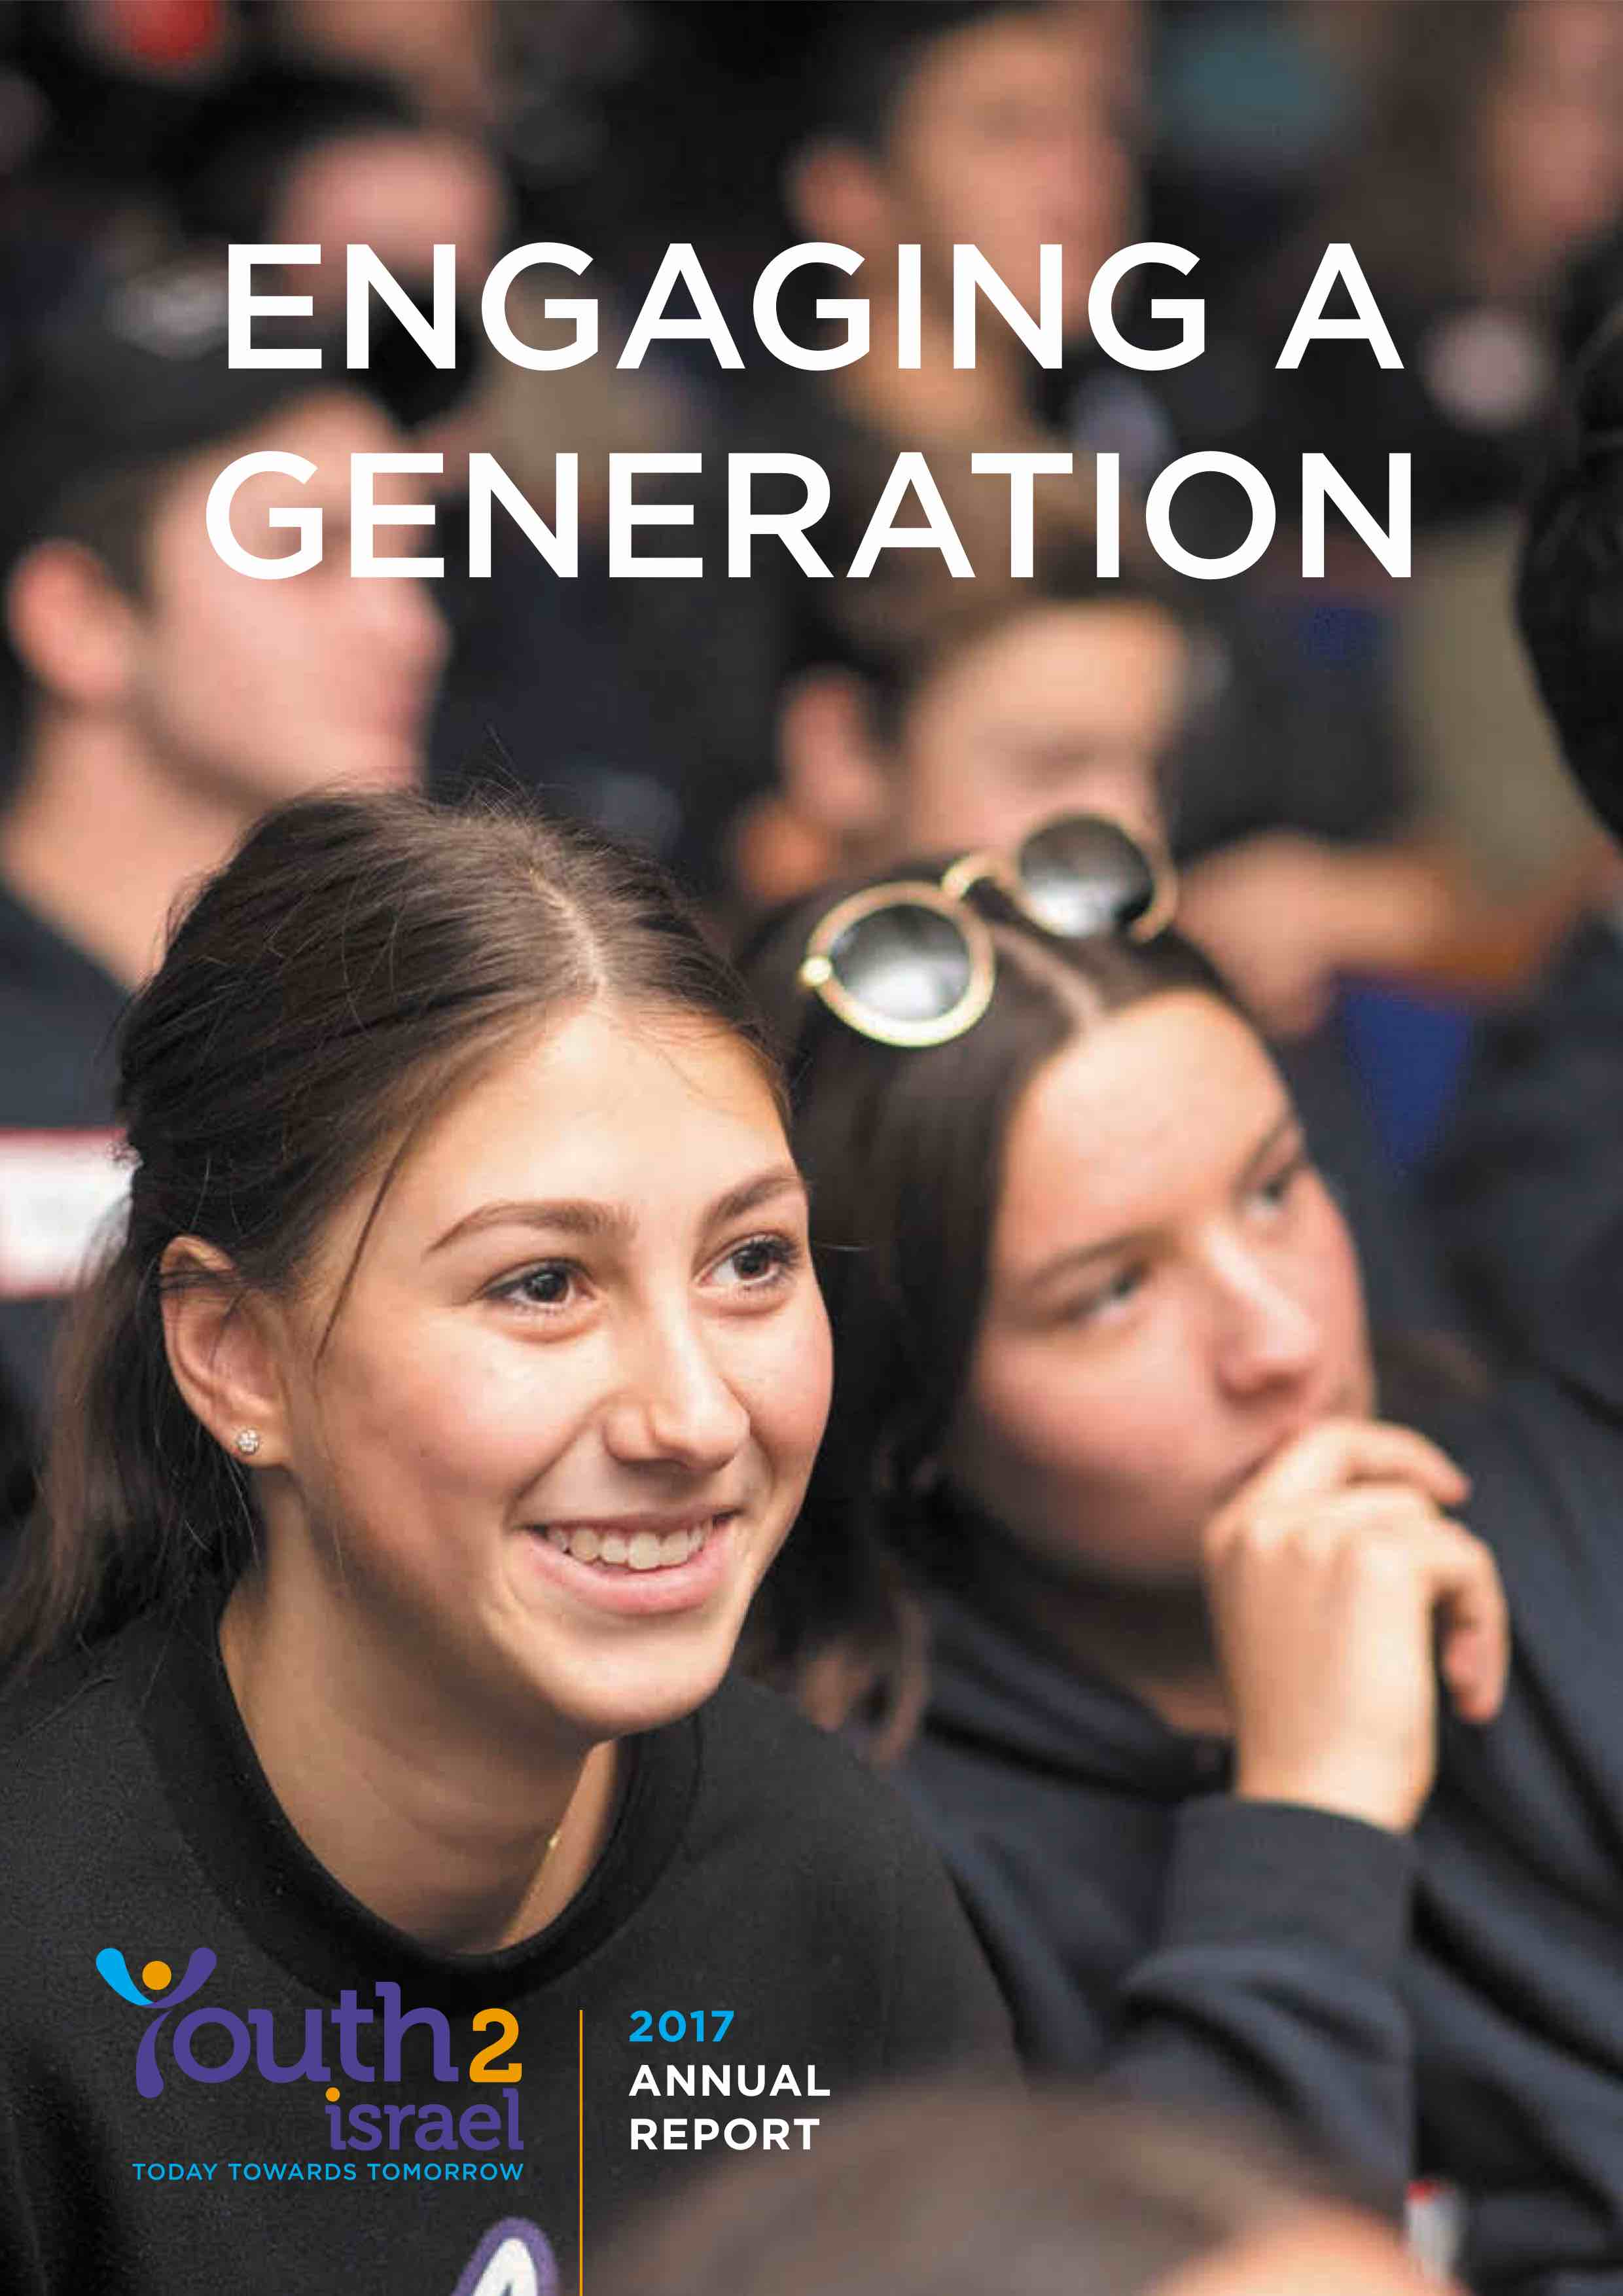 Youth 2 Israel 2017 Annual Report